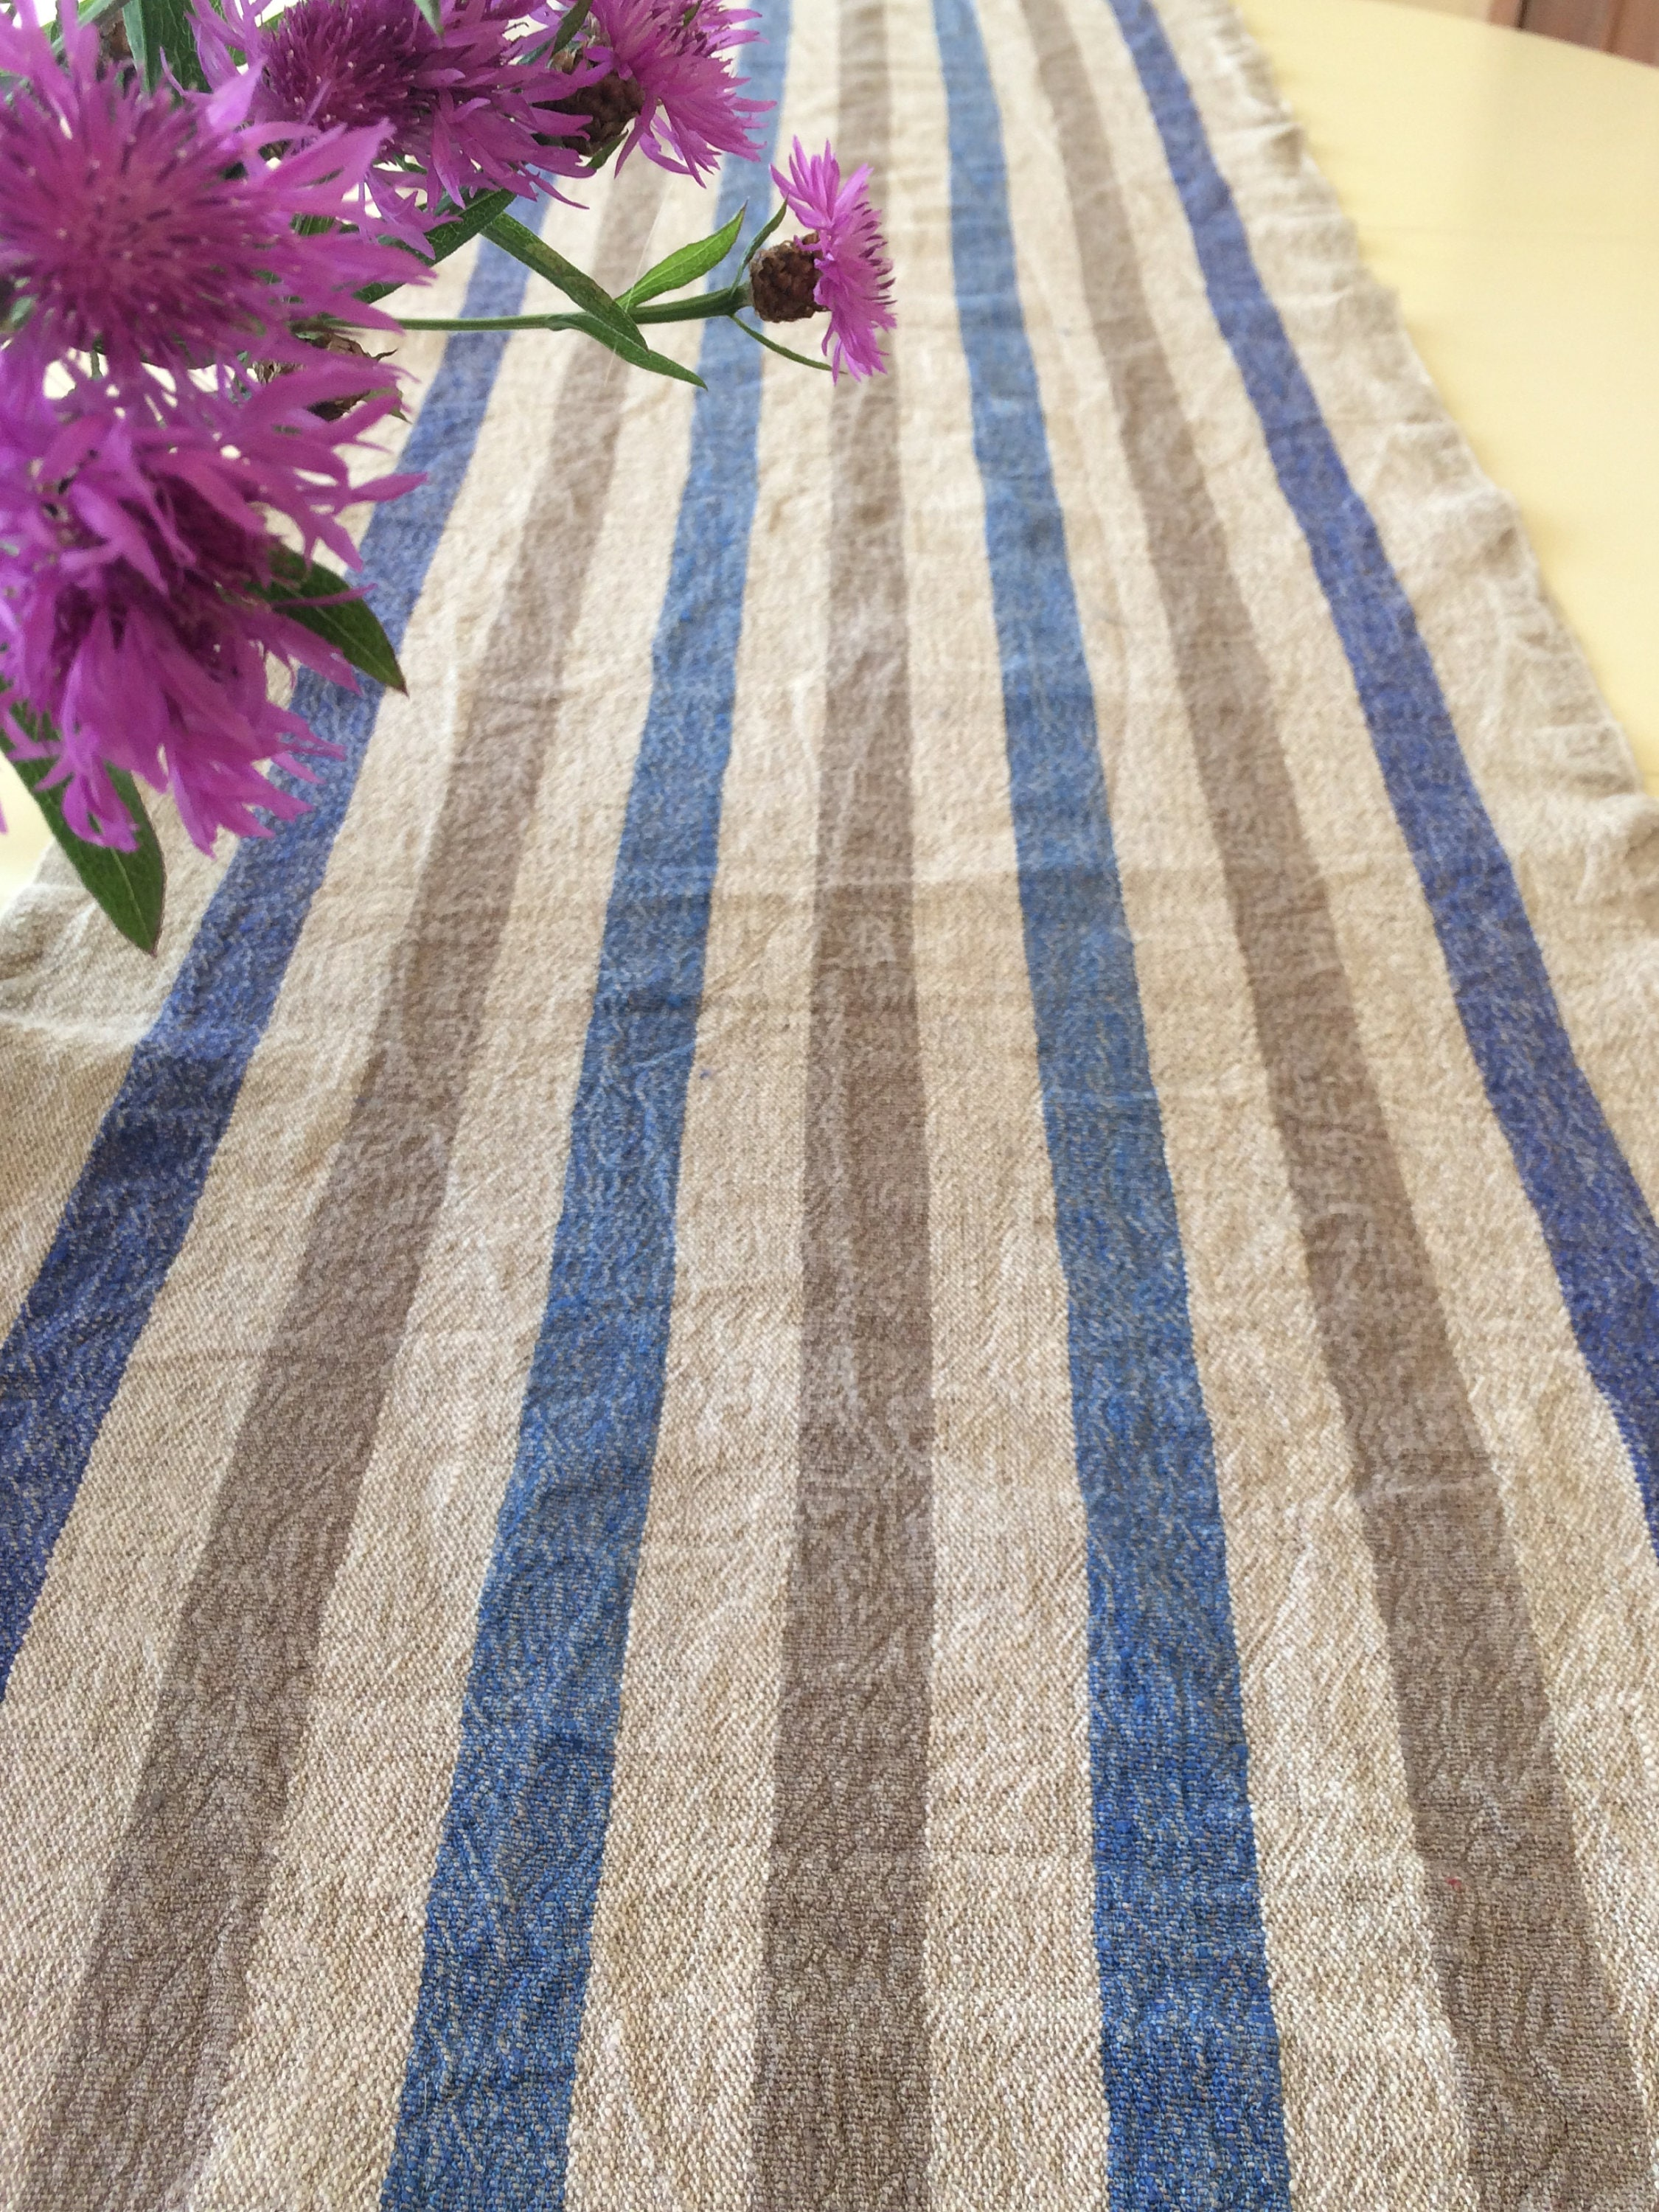 Blue Striped Table Runner With Fringes, Shabby Chic Table Runner, Rustic  Linen Table Run, Vintage Style Table Runner, Country House Decor